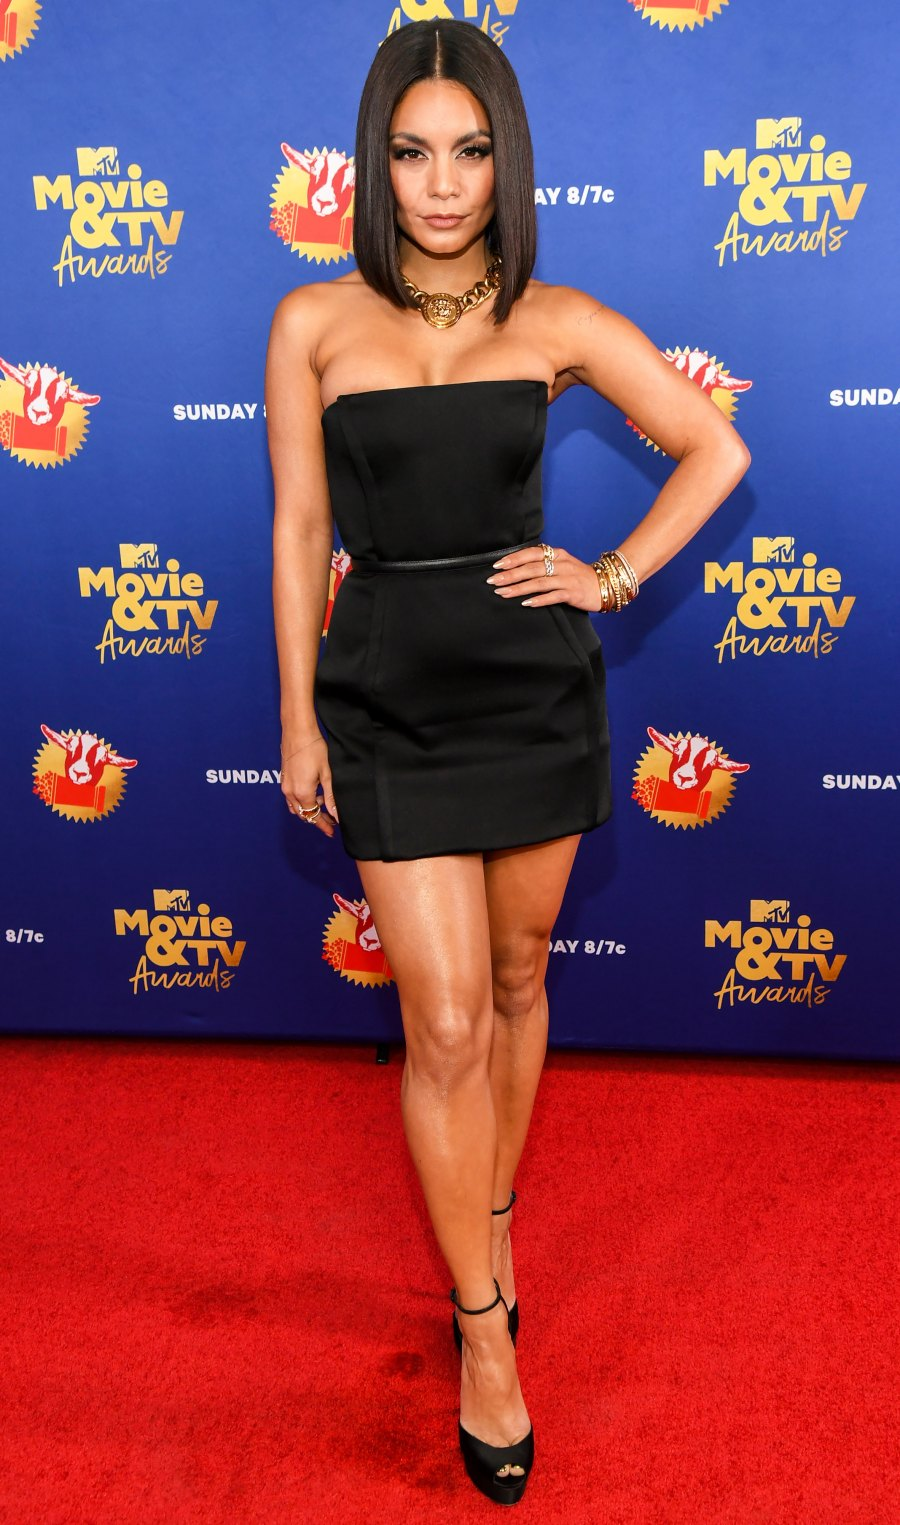 Top 5 Looks From the MTV Movie & TV Awards